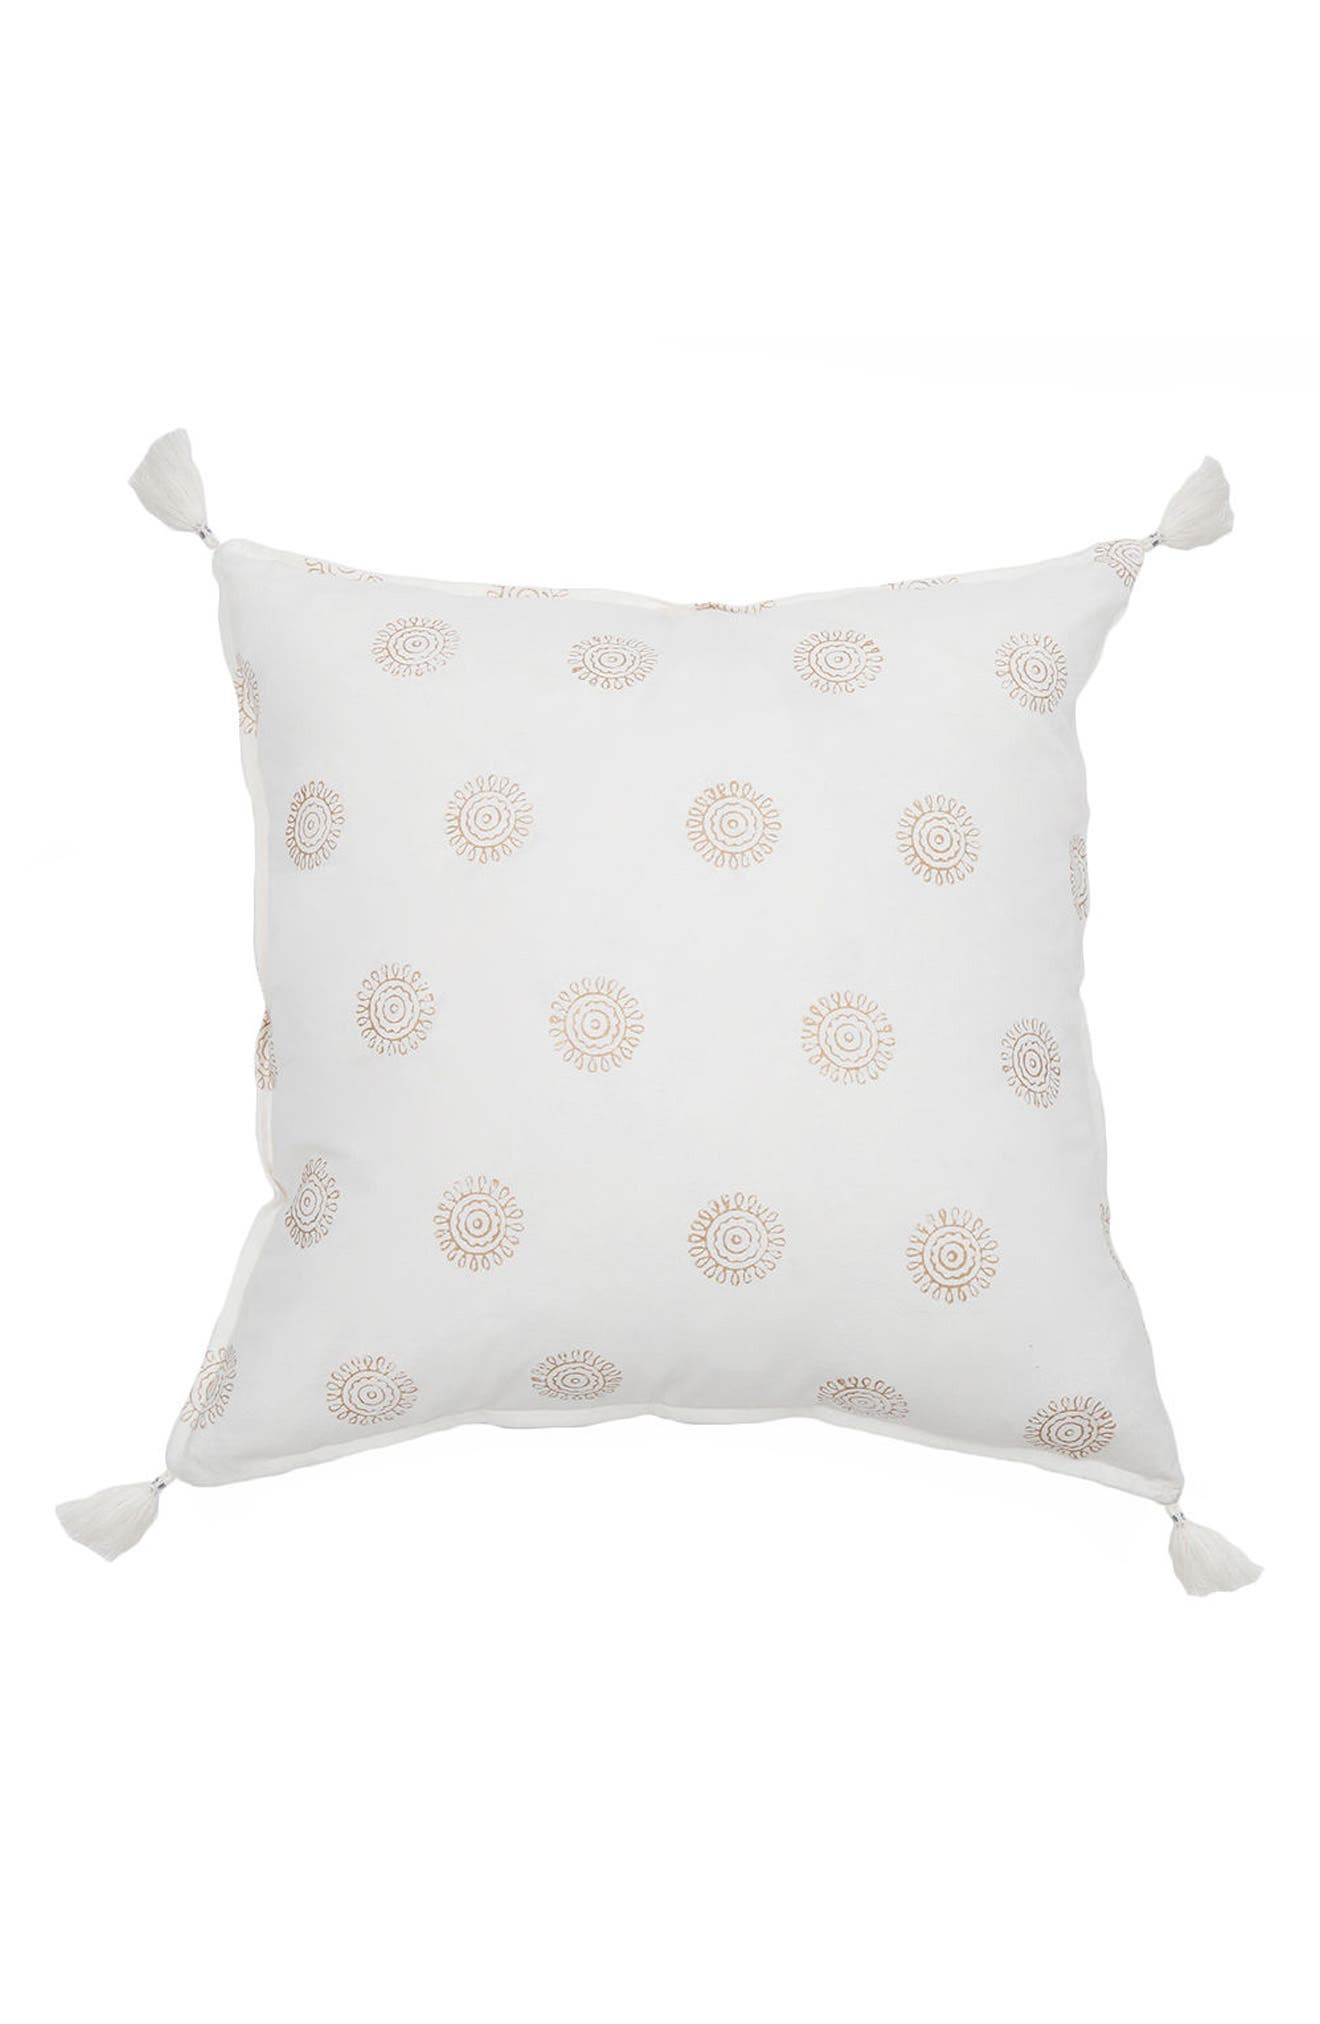 Main Image - Pom Pom at Home Ravi Accent Pillow